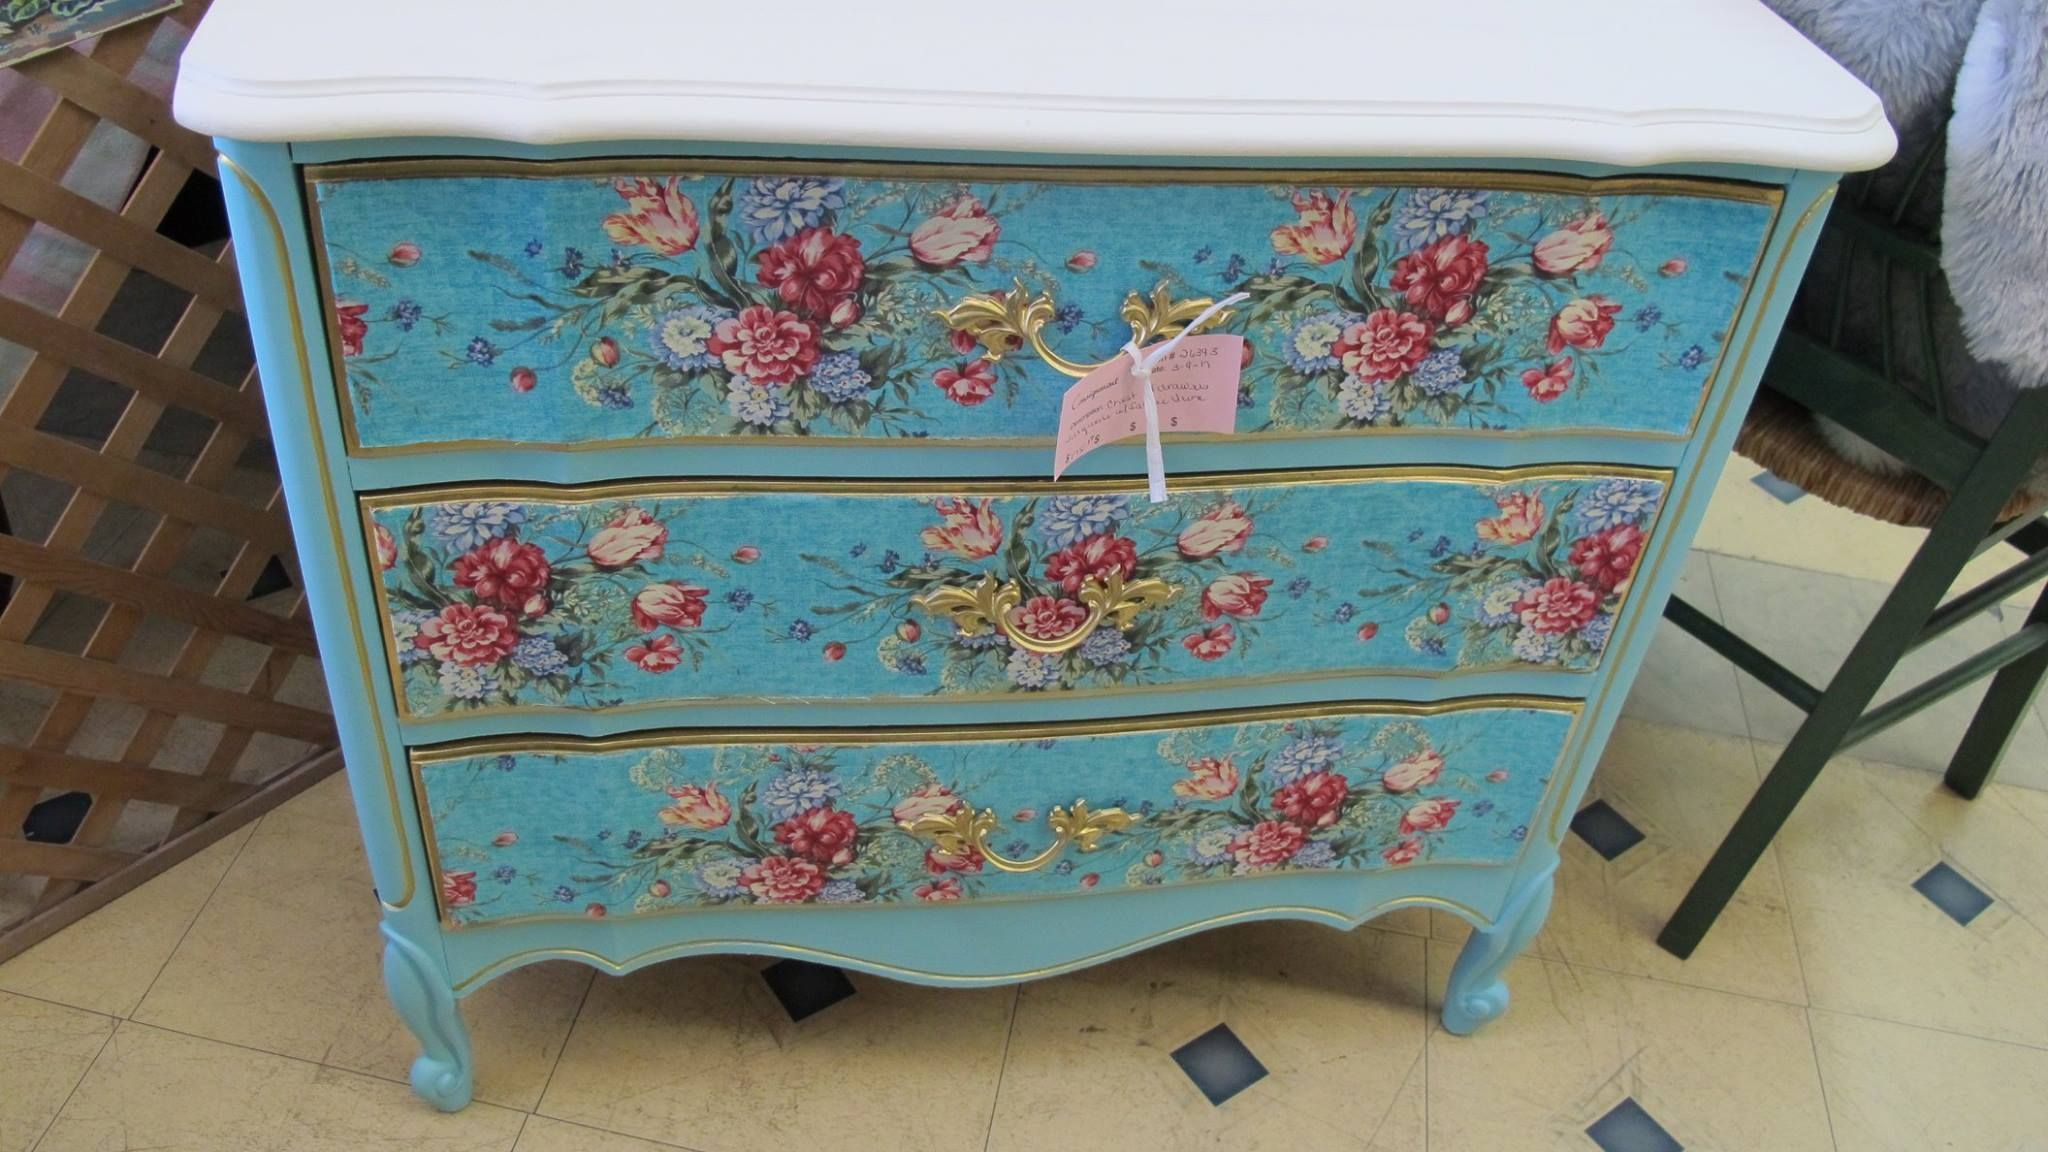 Floral Blue And Pink Flowers Dresser Painted Furniture Shabby Chic